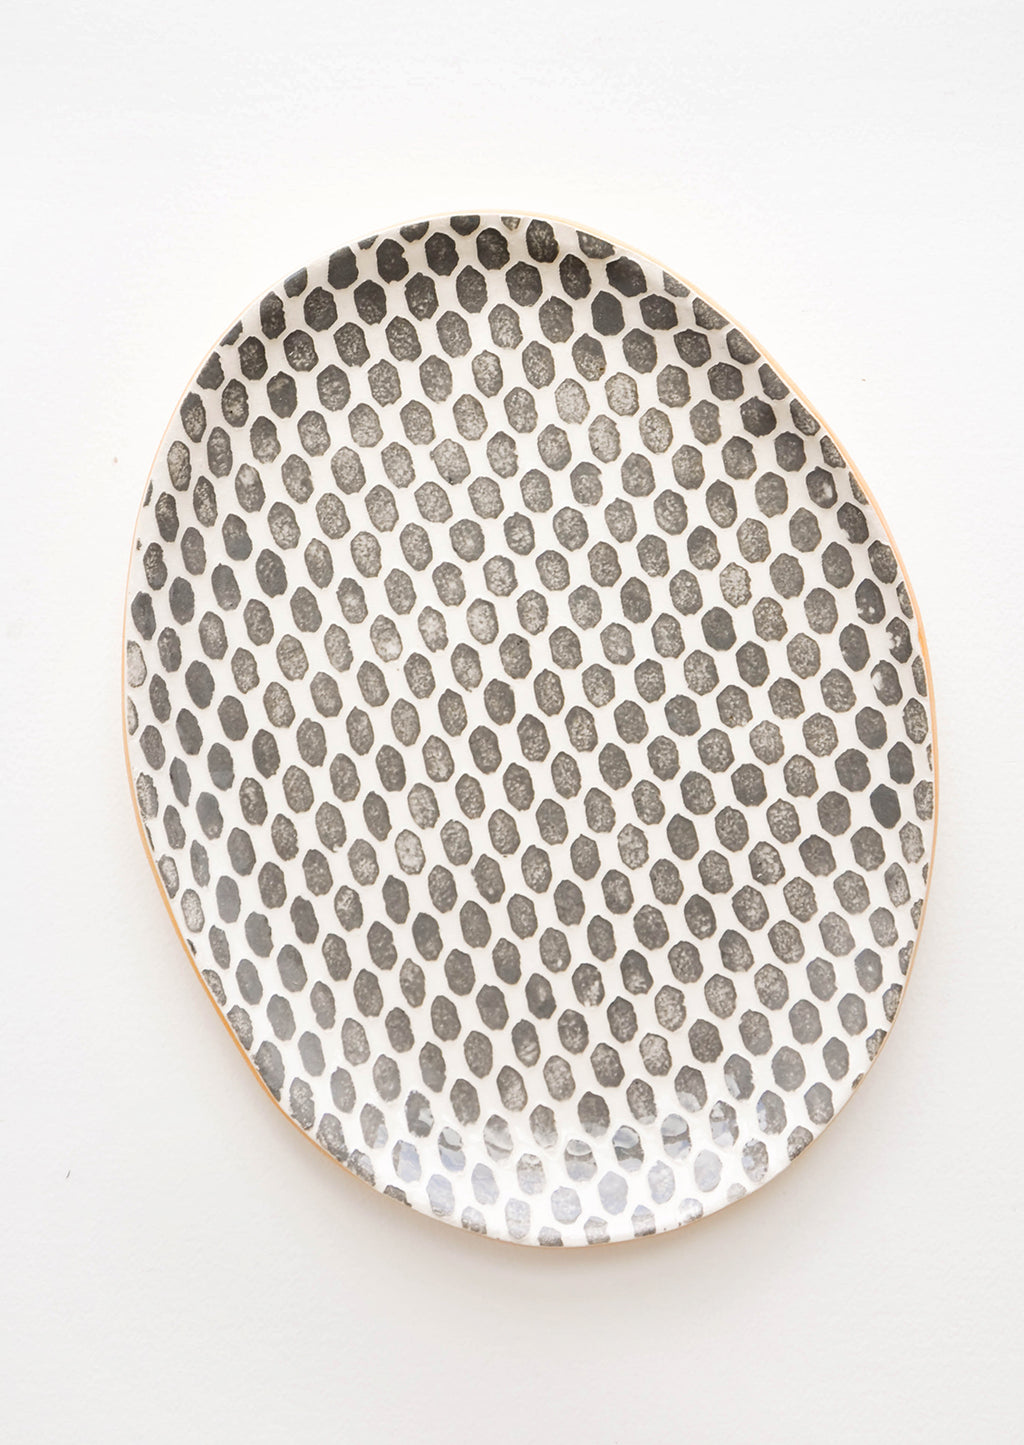 Dot / Charcoal: Pressed Pattern Oval Ceramic Platter in Dot / Charcoal - LEIF